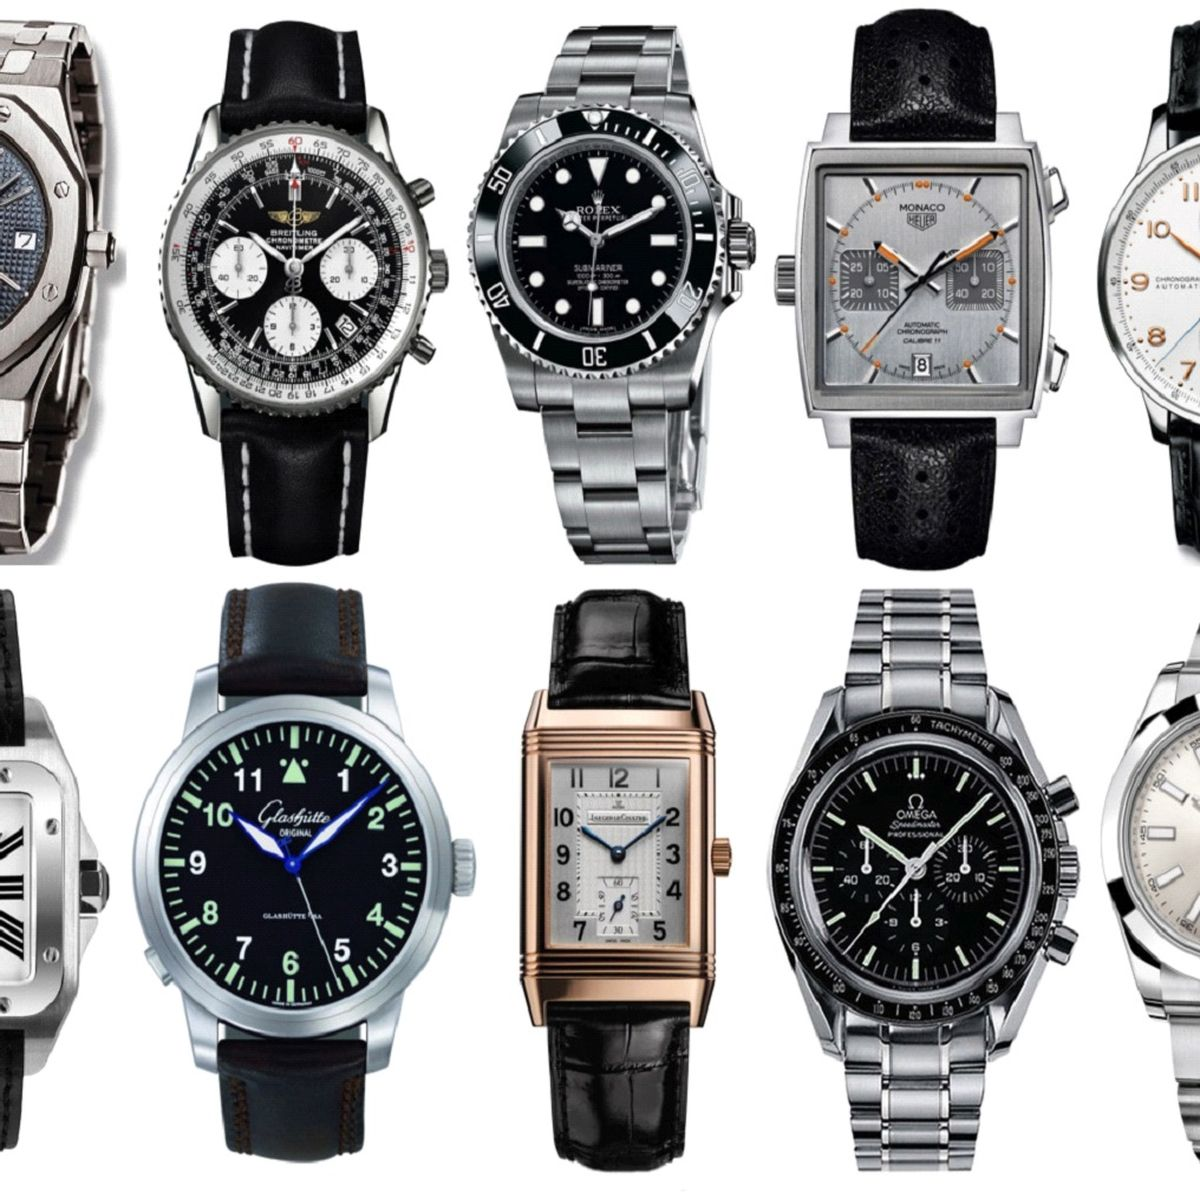 Buy a Luxury Watch for Your Graduate